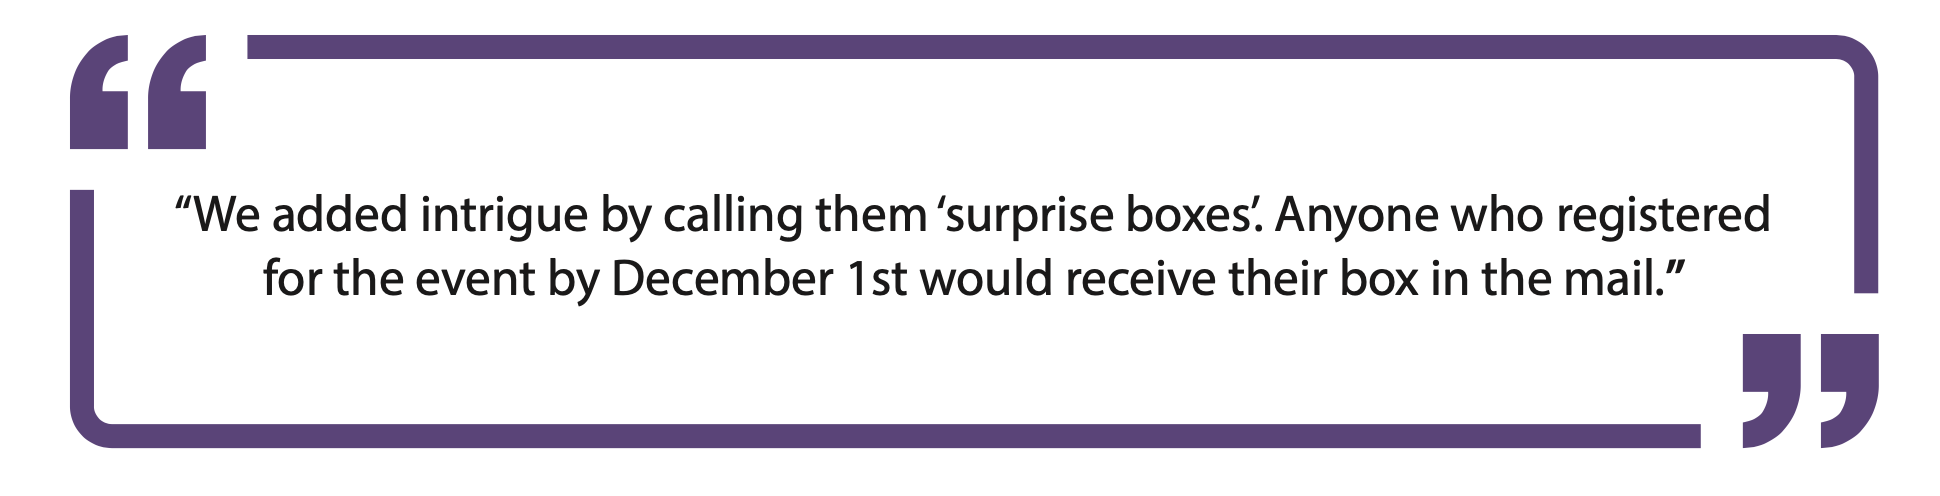 Quote: We added intrigue by calling them 'surprise boxes'. Anyone who registered to the event by December 1st would receive a box in the mail.